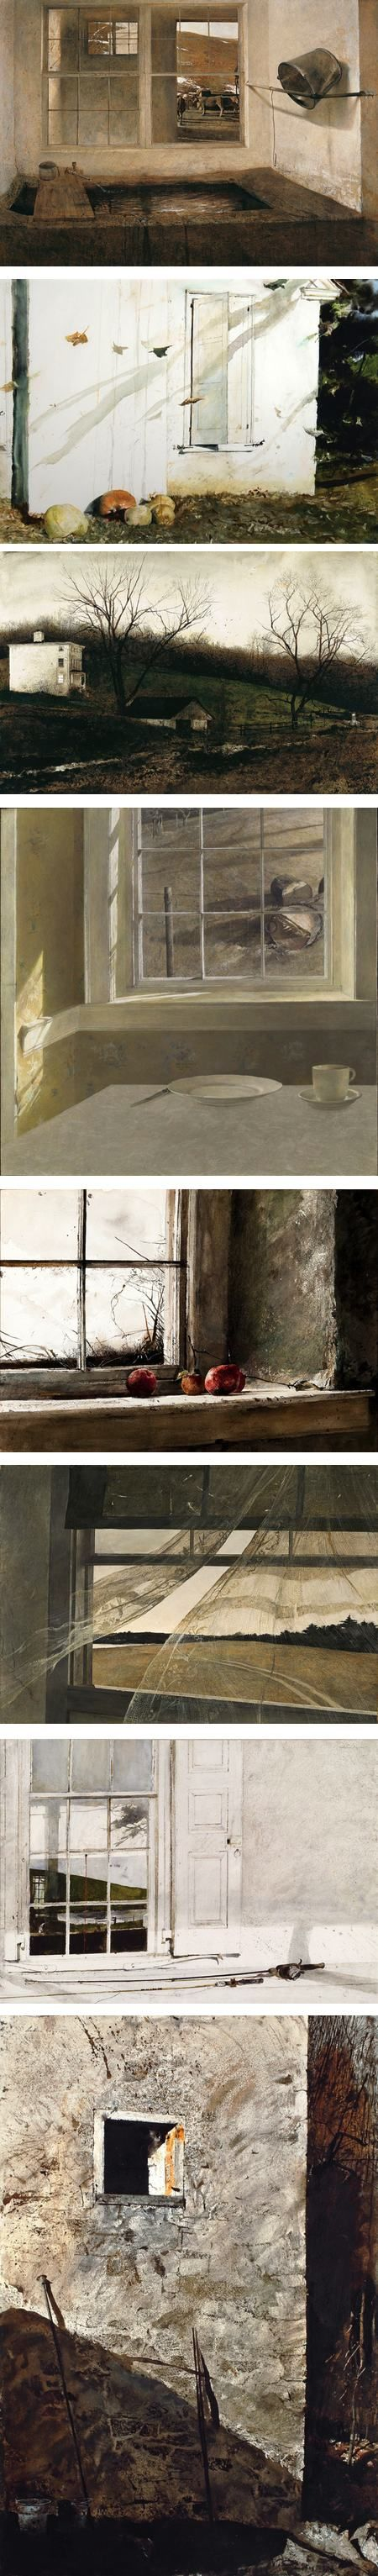 I love the neutral tones he uses...come to think of it, I bet I've borrowed from him compositionally (color, shape, content/subject matter) for my photography Andrew Wyeth's windows